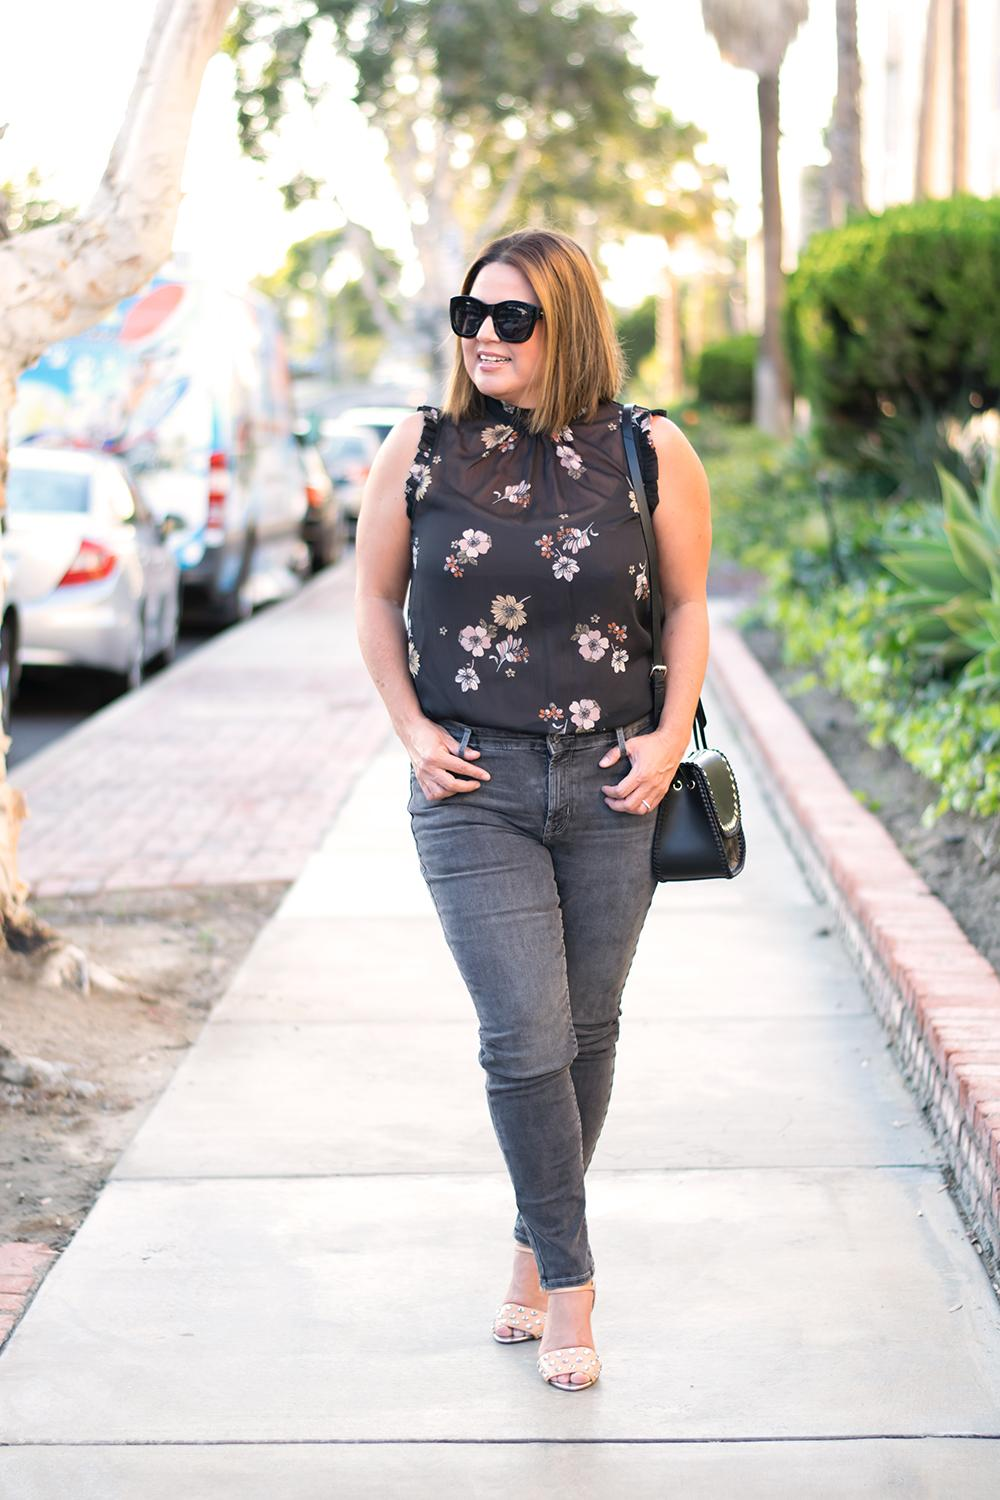 barefoot-in-la-casual-outfit-los-angeles-fashion-street-style-blogger-personal-stylist-0616